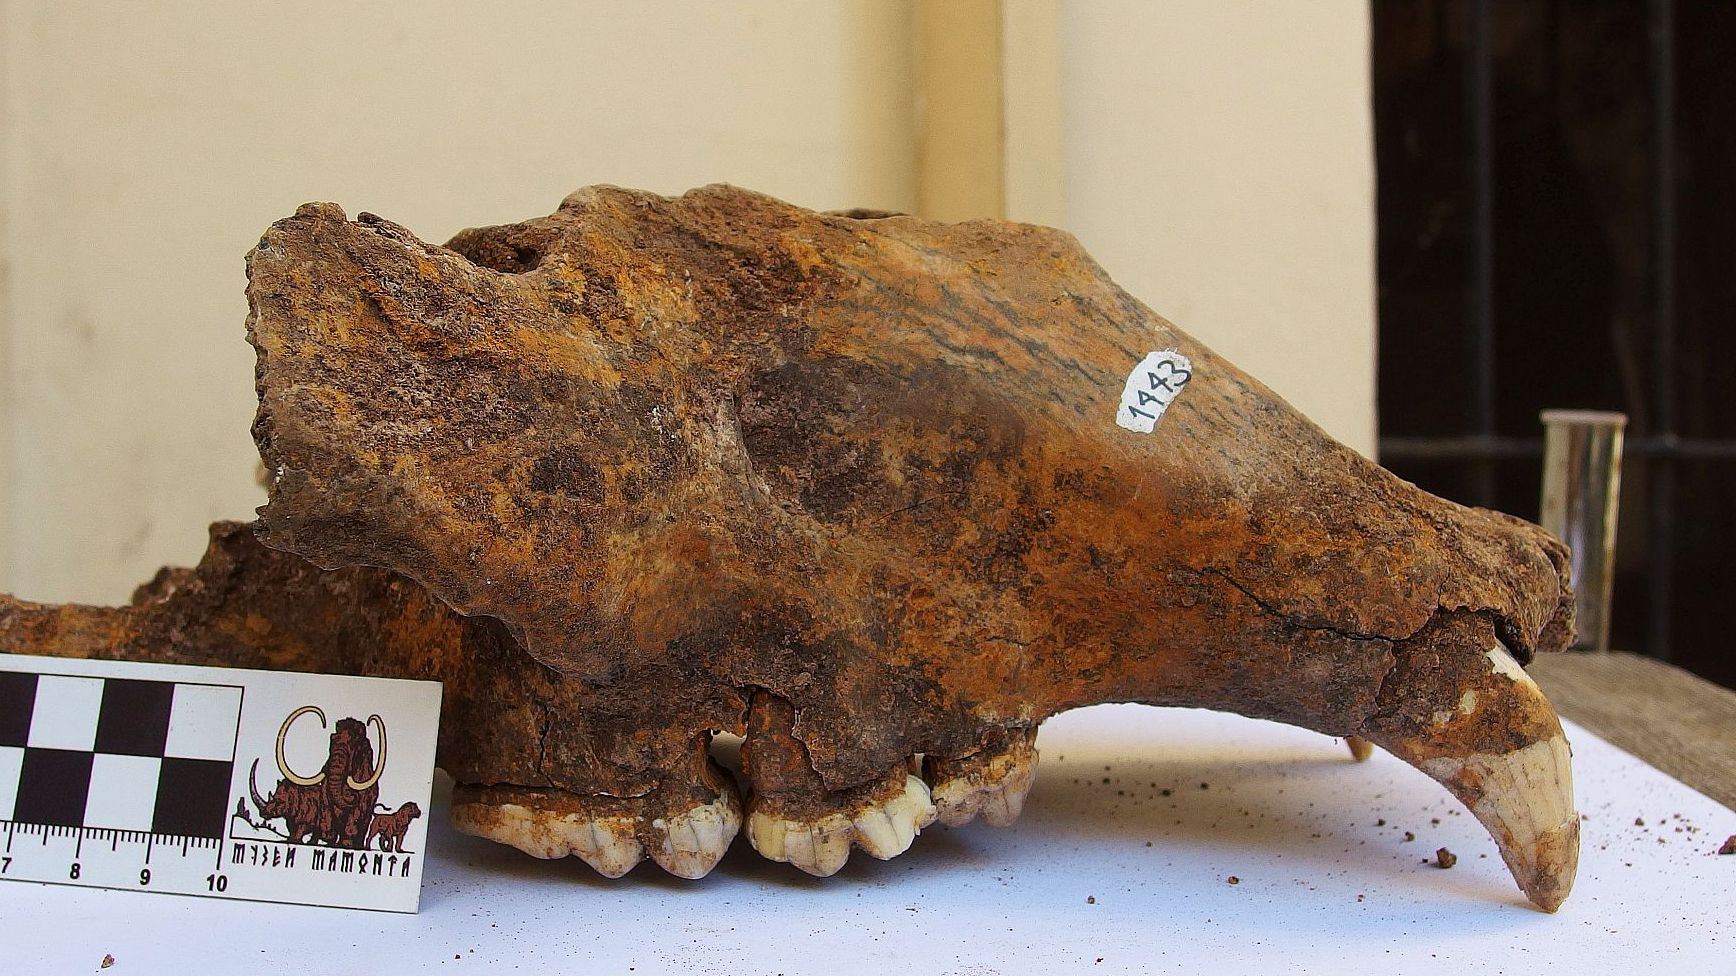 The skull of a cave bear from the last ice age found near Belgrade.